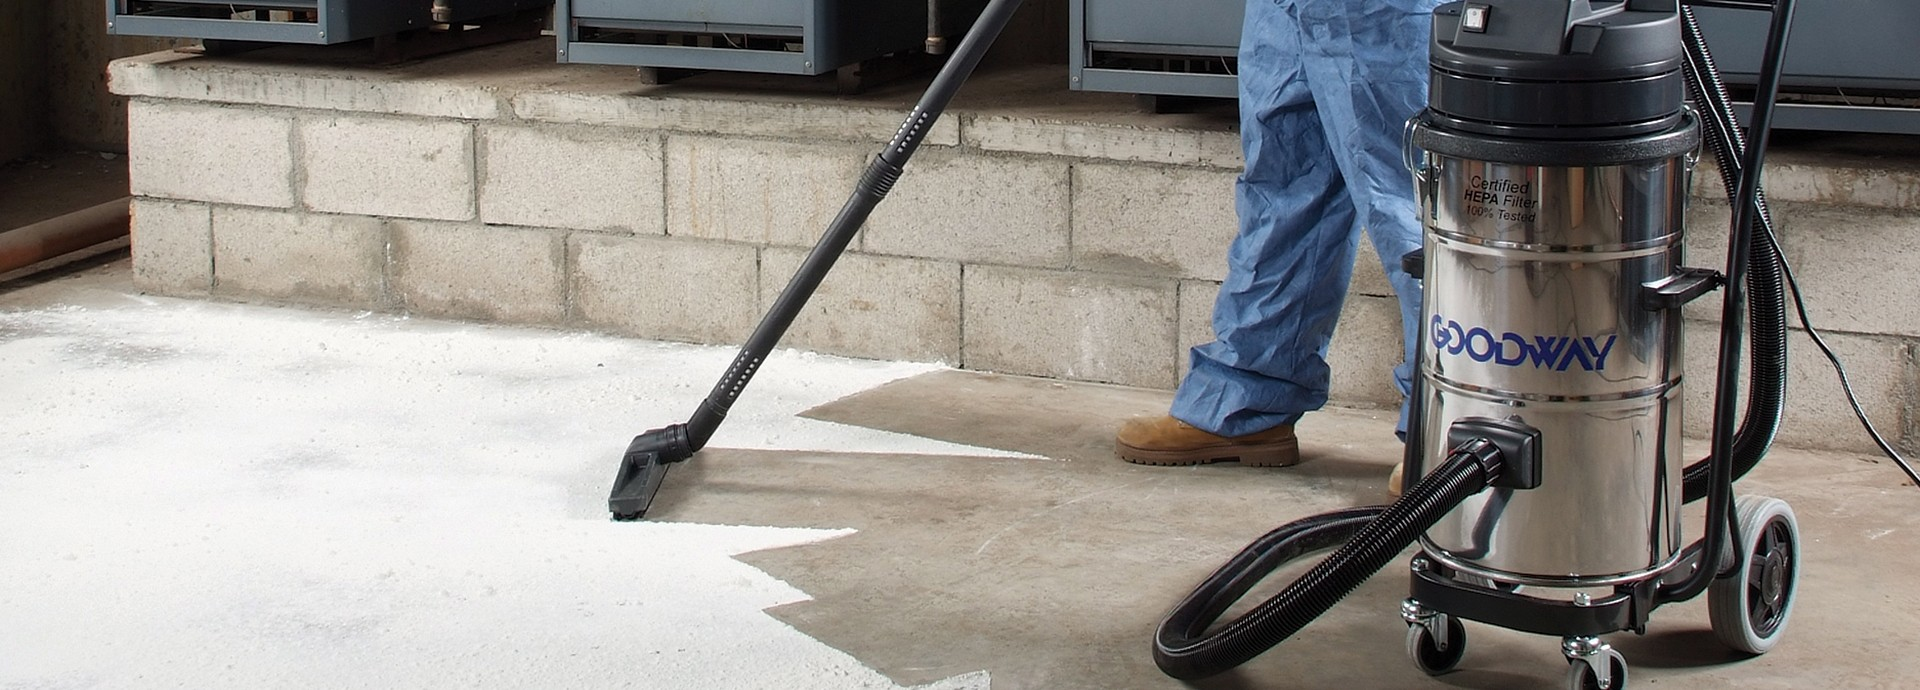 How to Pick a High Quality Industrial HEPA Vacuum | Goodway Technologies